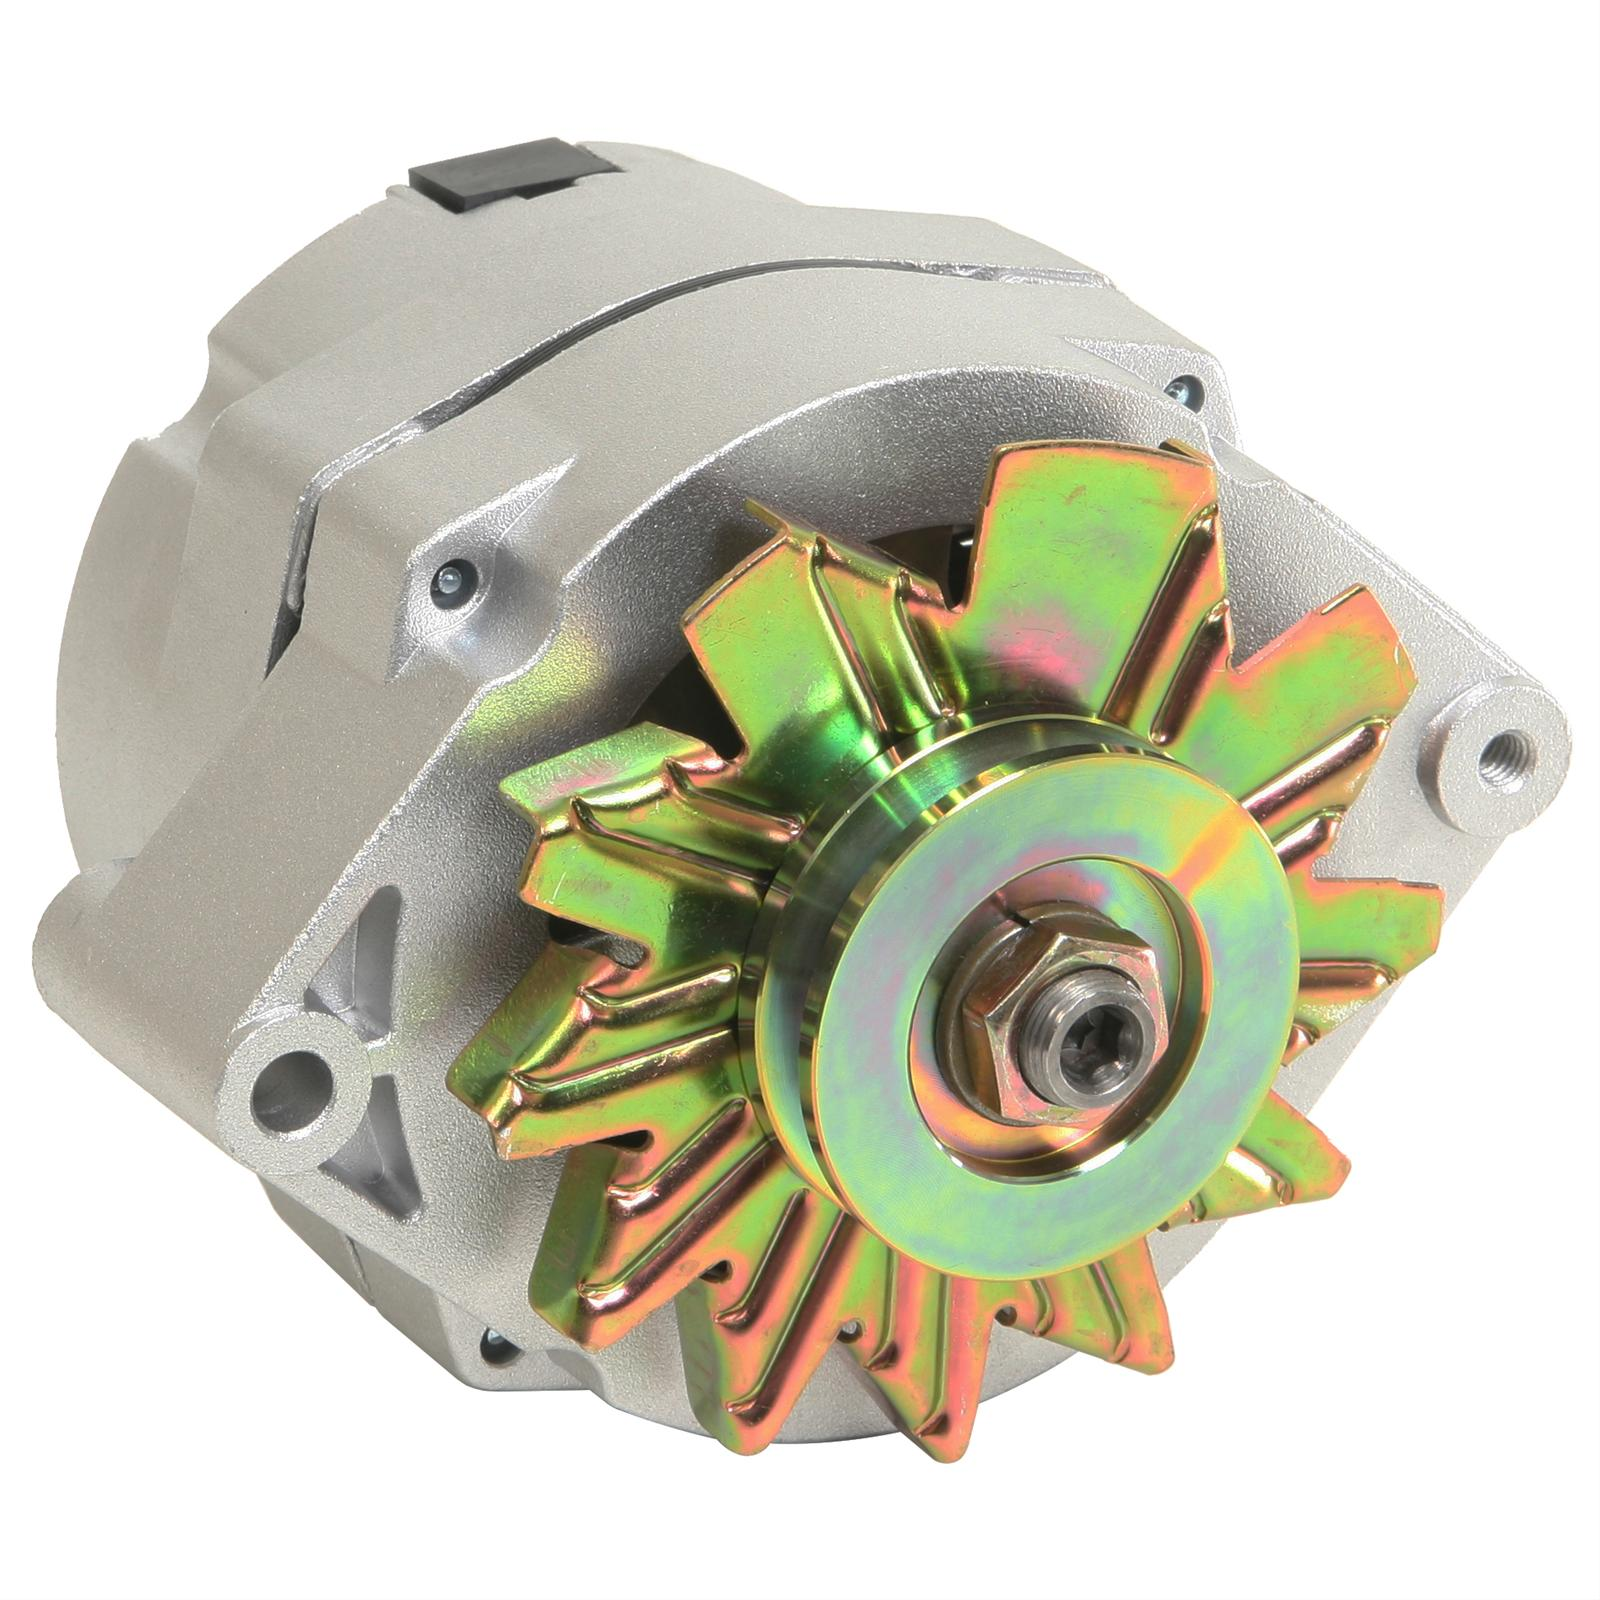 Summit Racing Alternators Sum 810344 Free Shipping On Orders Over Two Engines And Using Thedual Alternator Controller 99 At